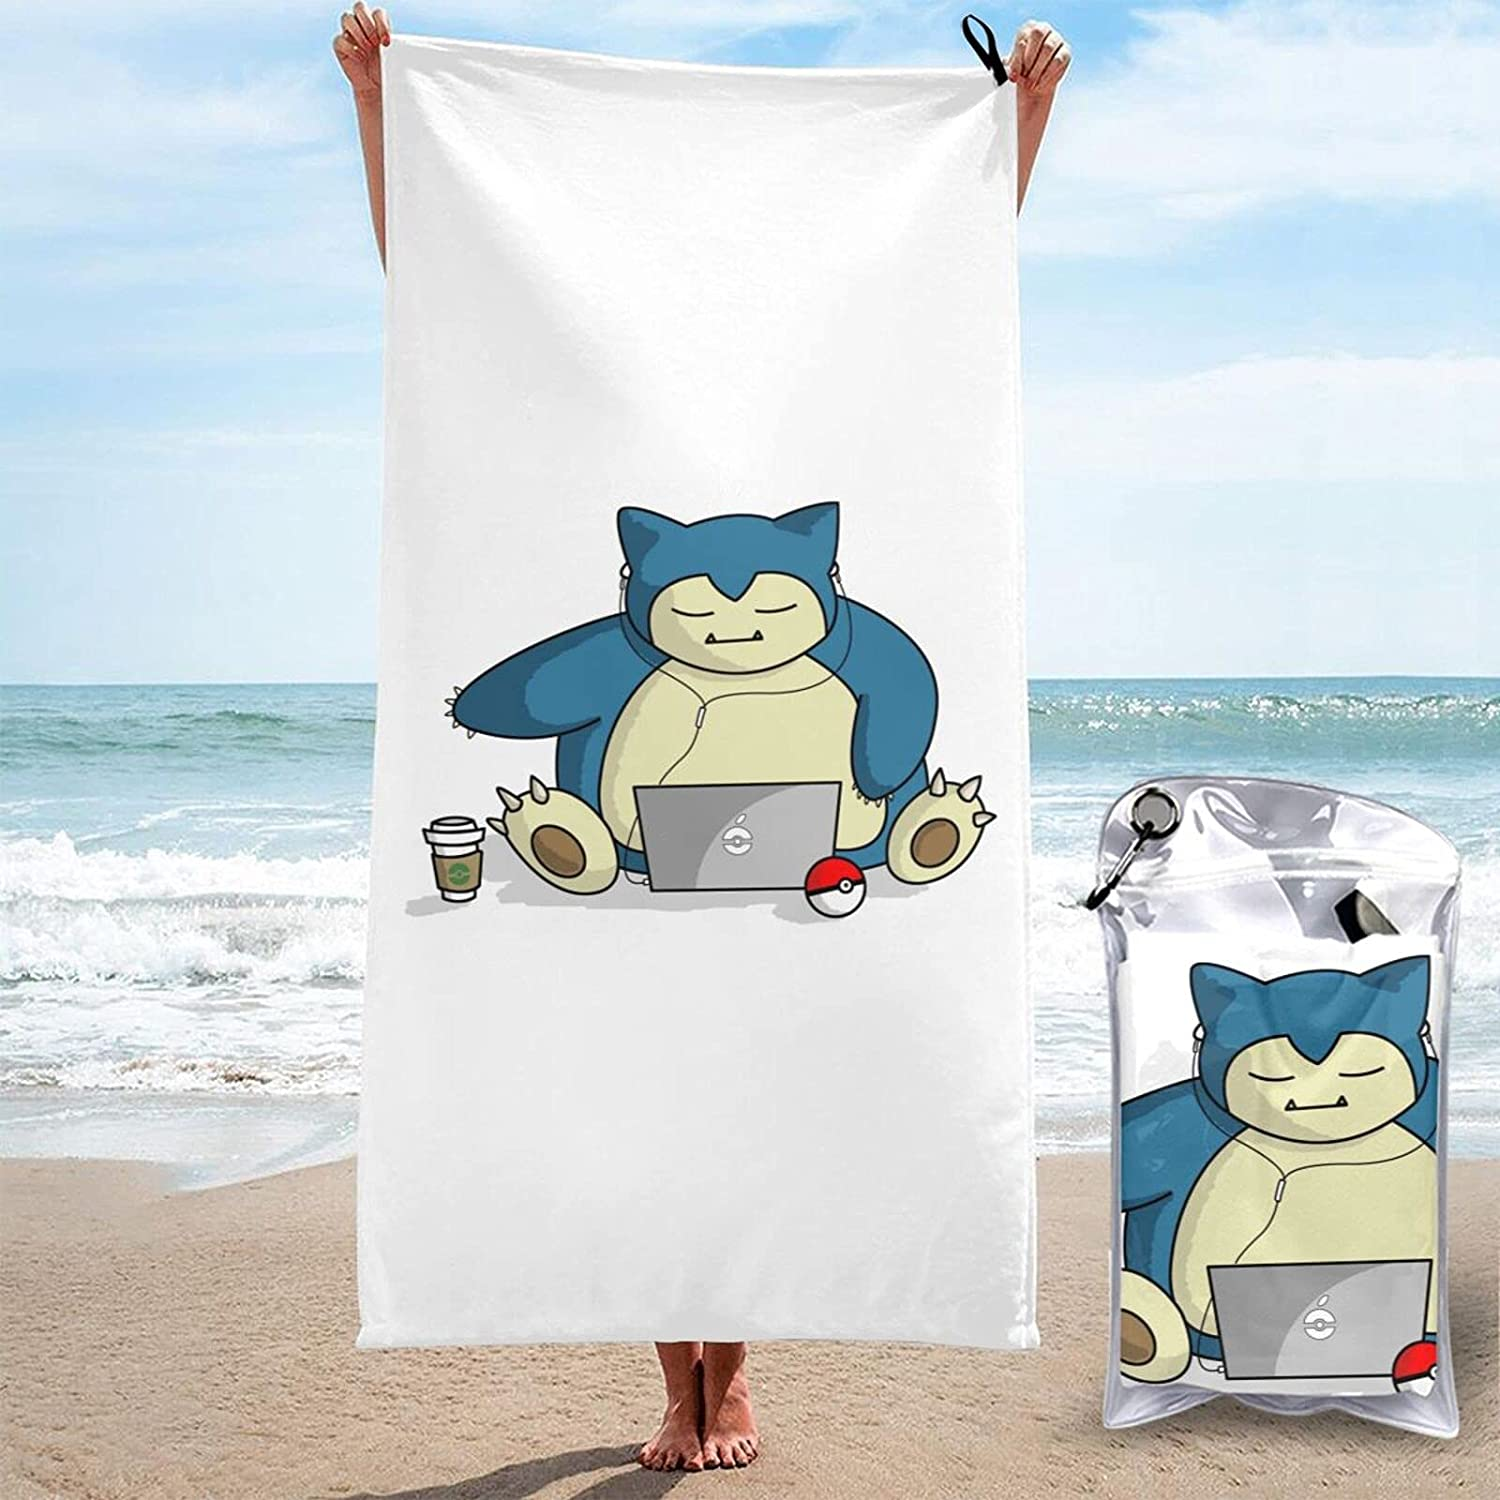 Snorlax 3D Shipping included Printed Large Beach Towels Sand-Free Quick-Dryin Detroit Mall are